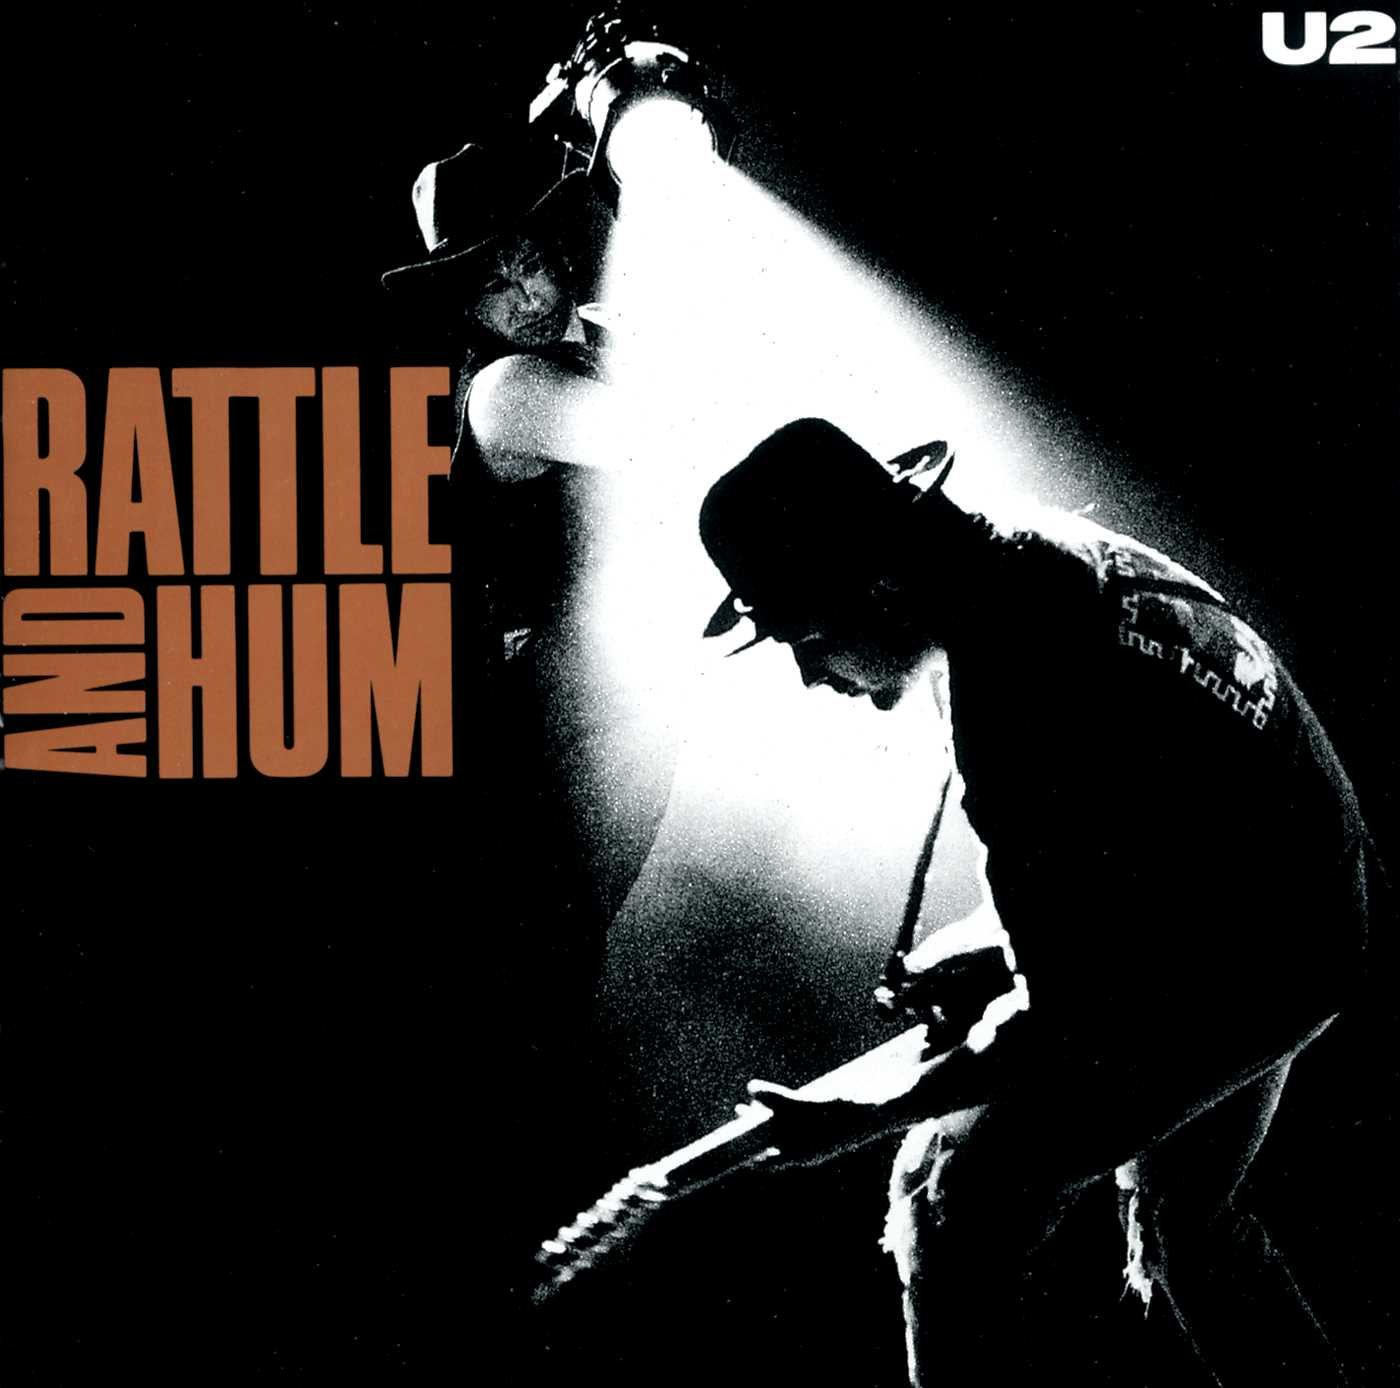 Rattle & Hum by Virgin Emi Records